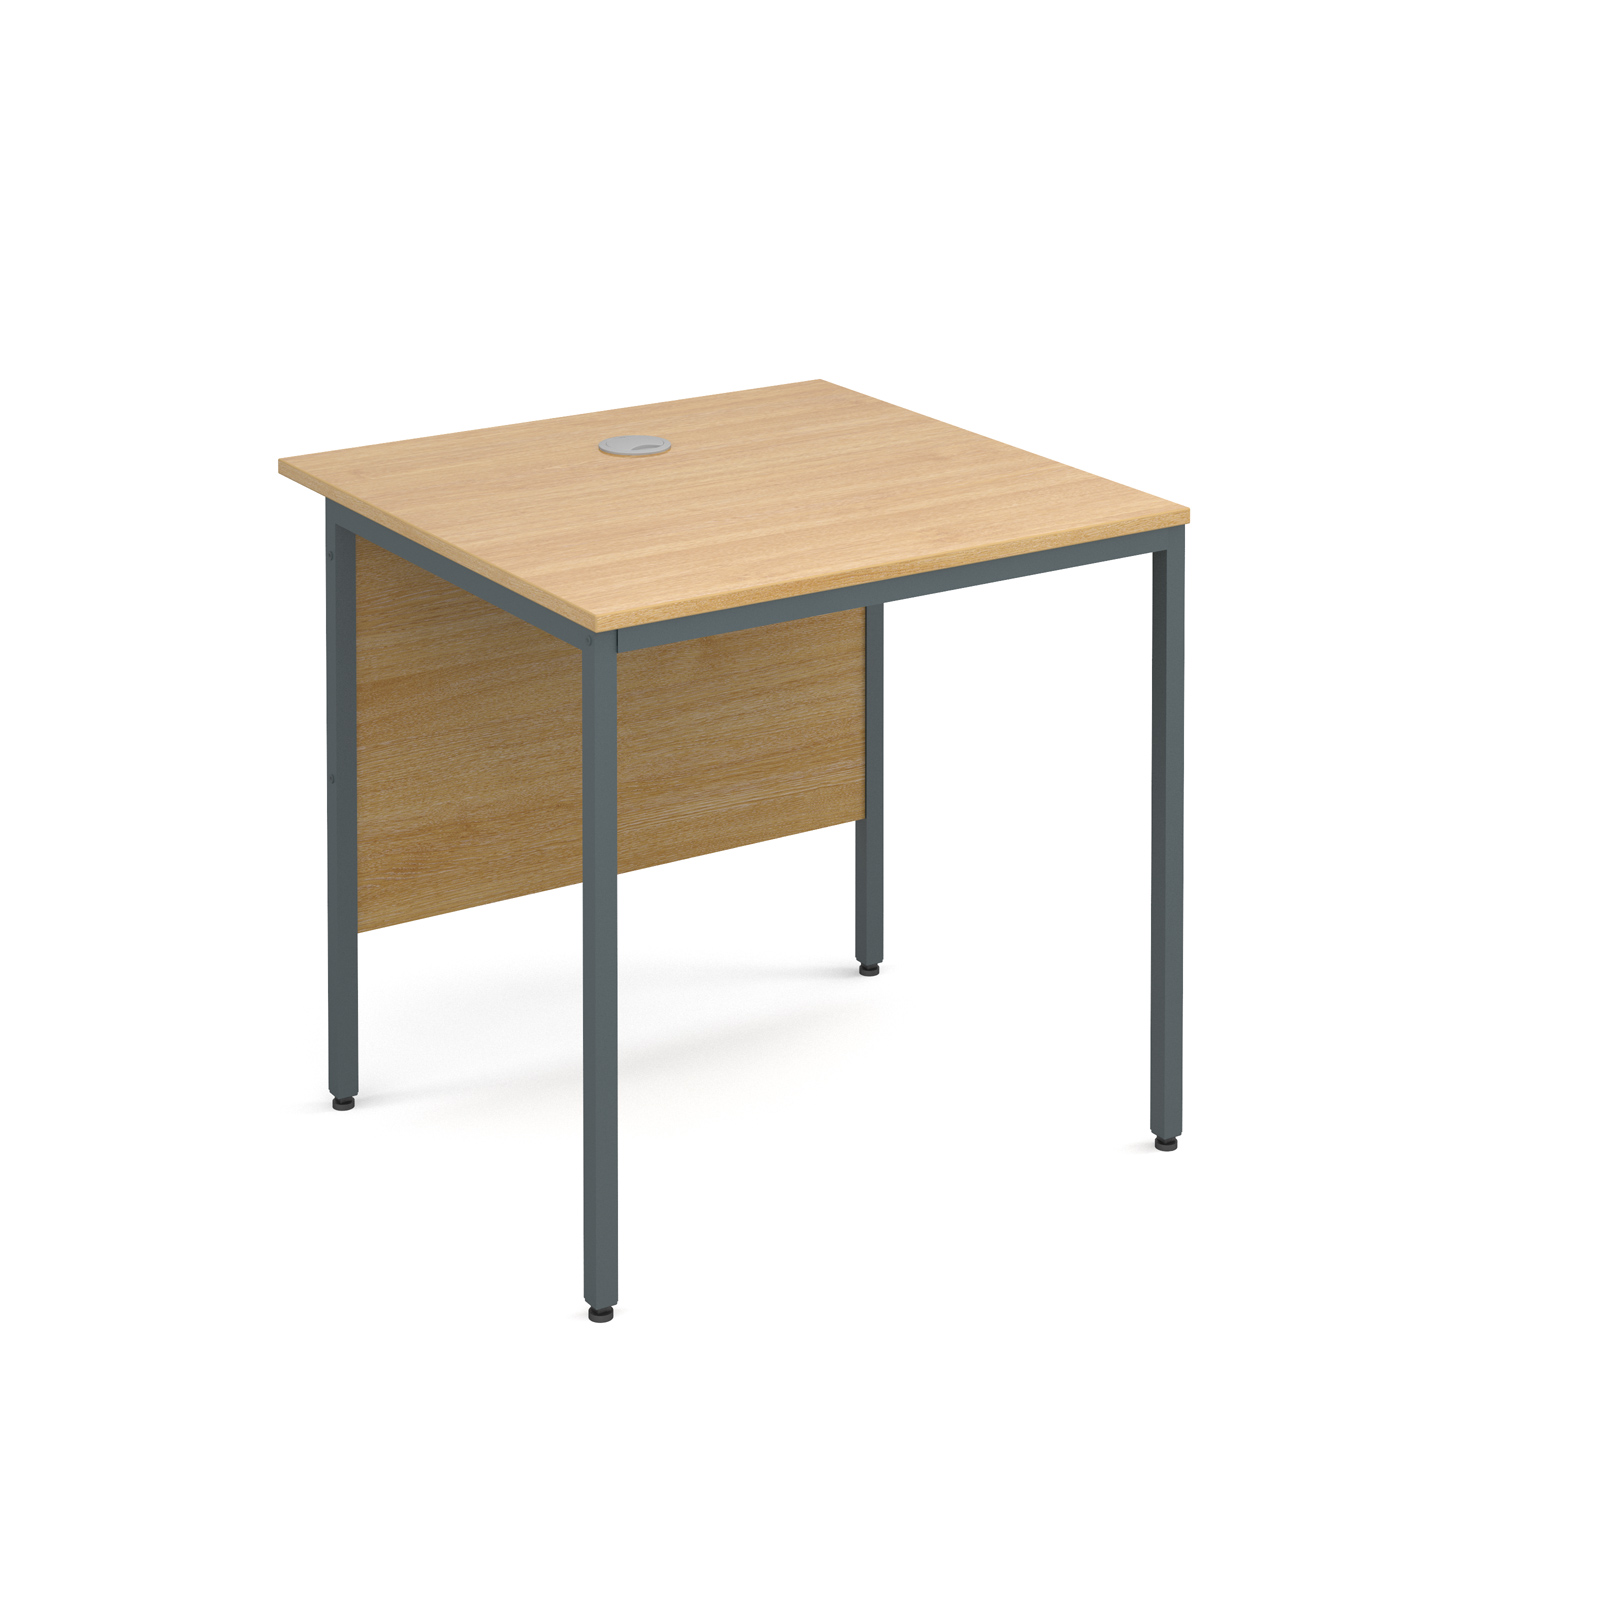 Maestro H frame straight desk 754mm - oak